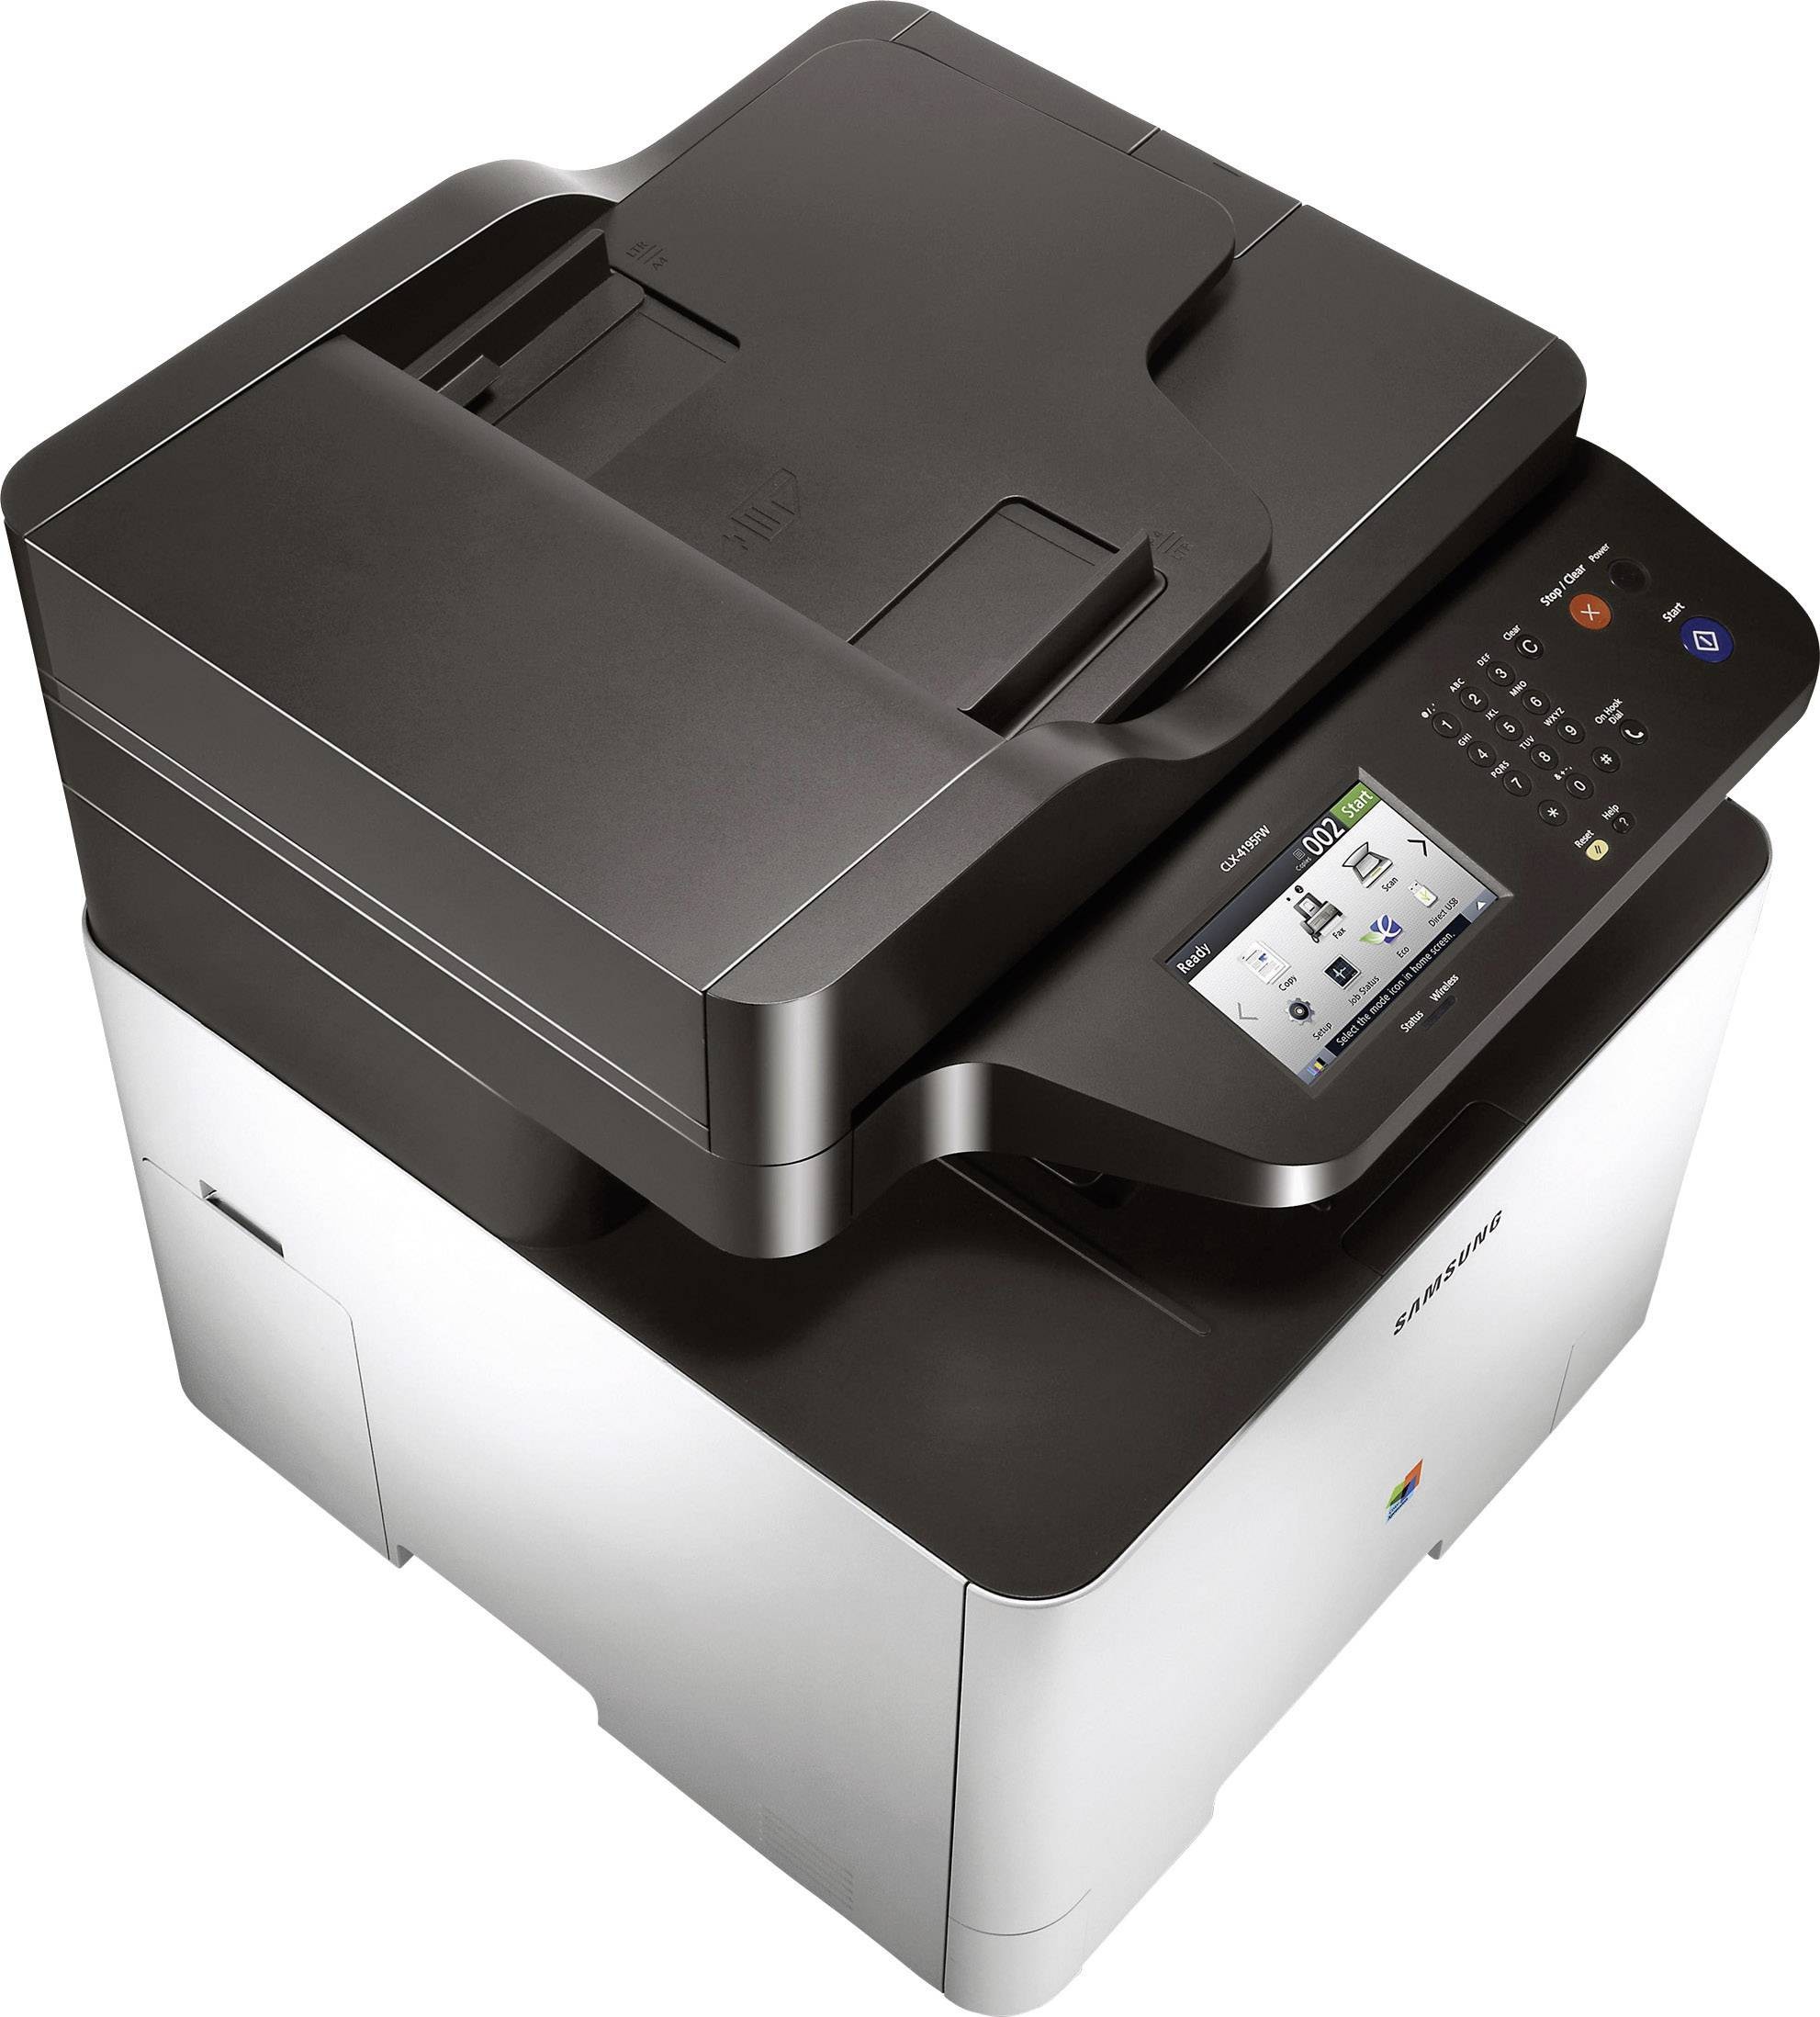 Samsung CLX-4195FW MFP Scan Download Driver